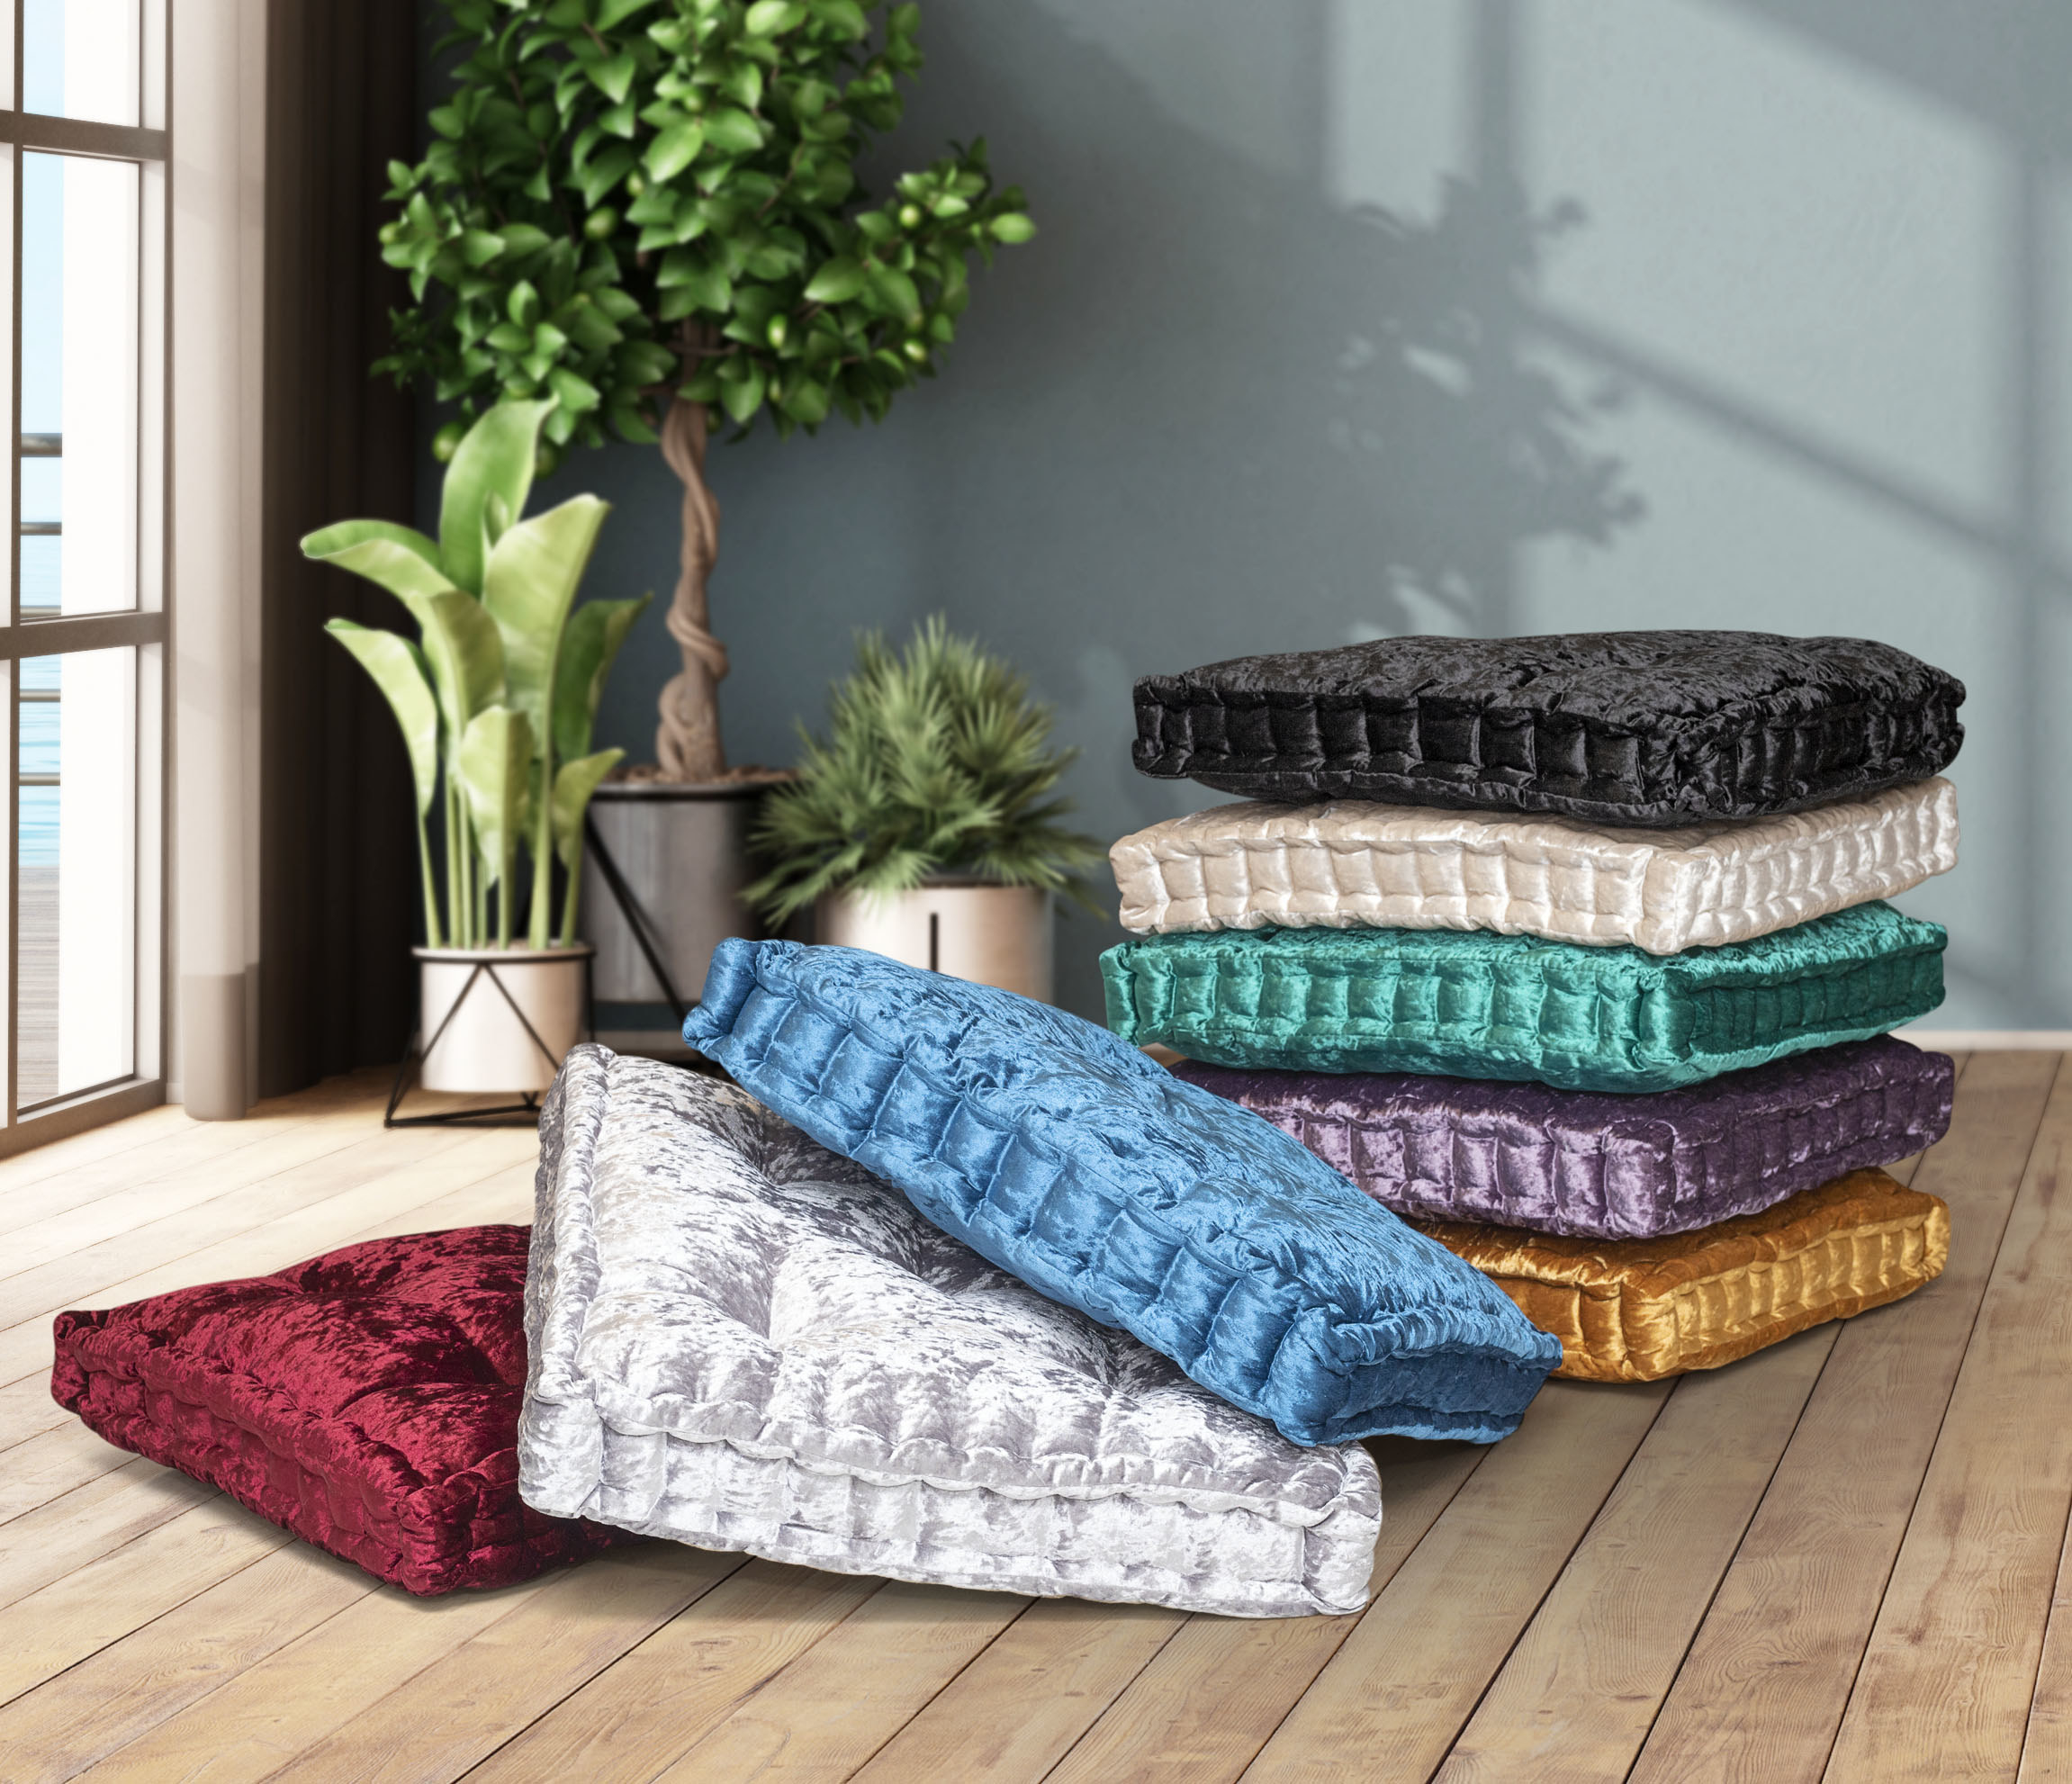 the large tufted square cushions in red, gray, blue, black, off-white, green, purple, and yellow